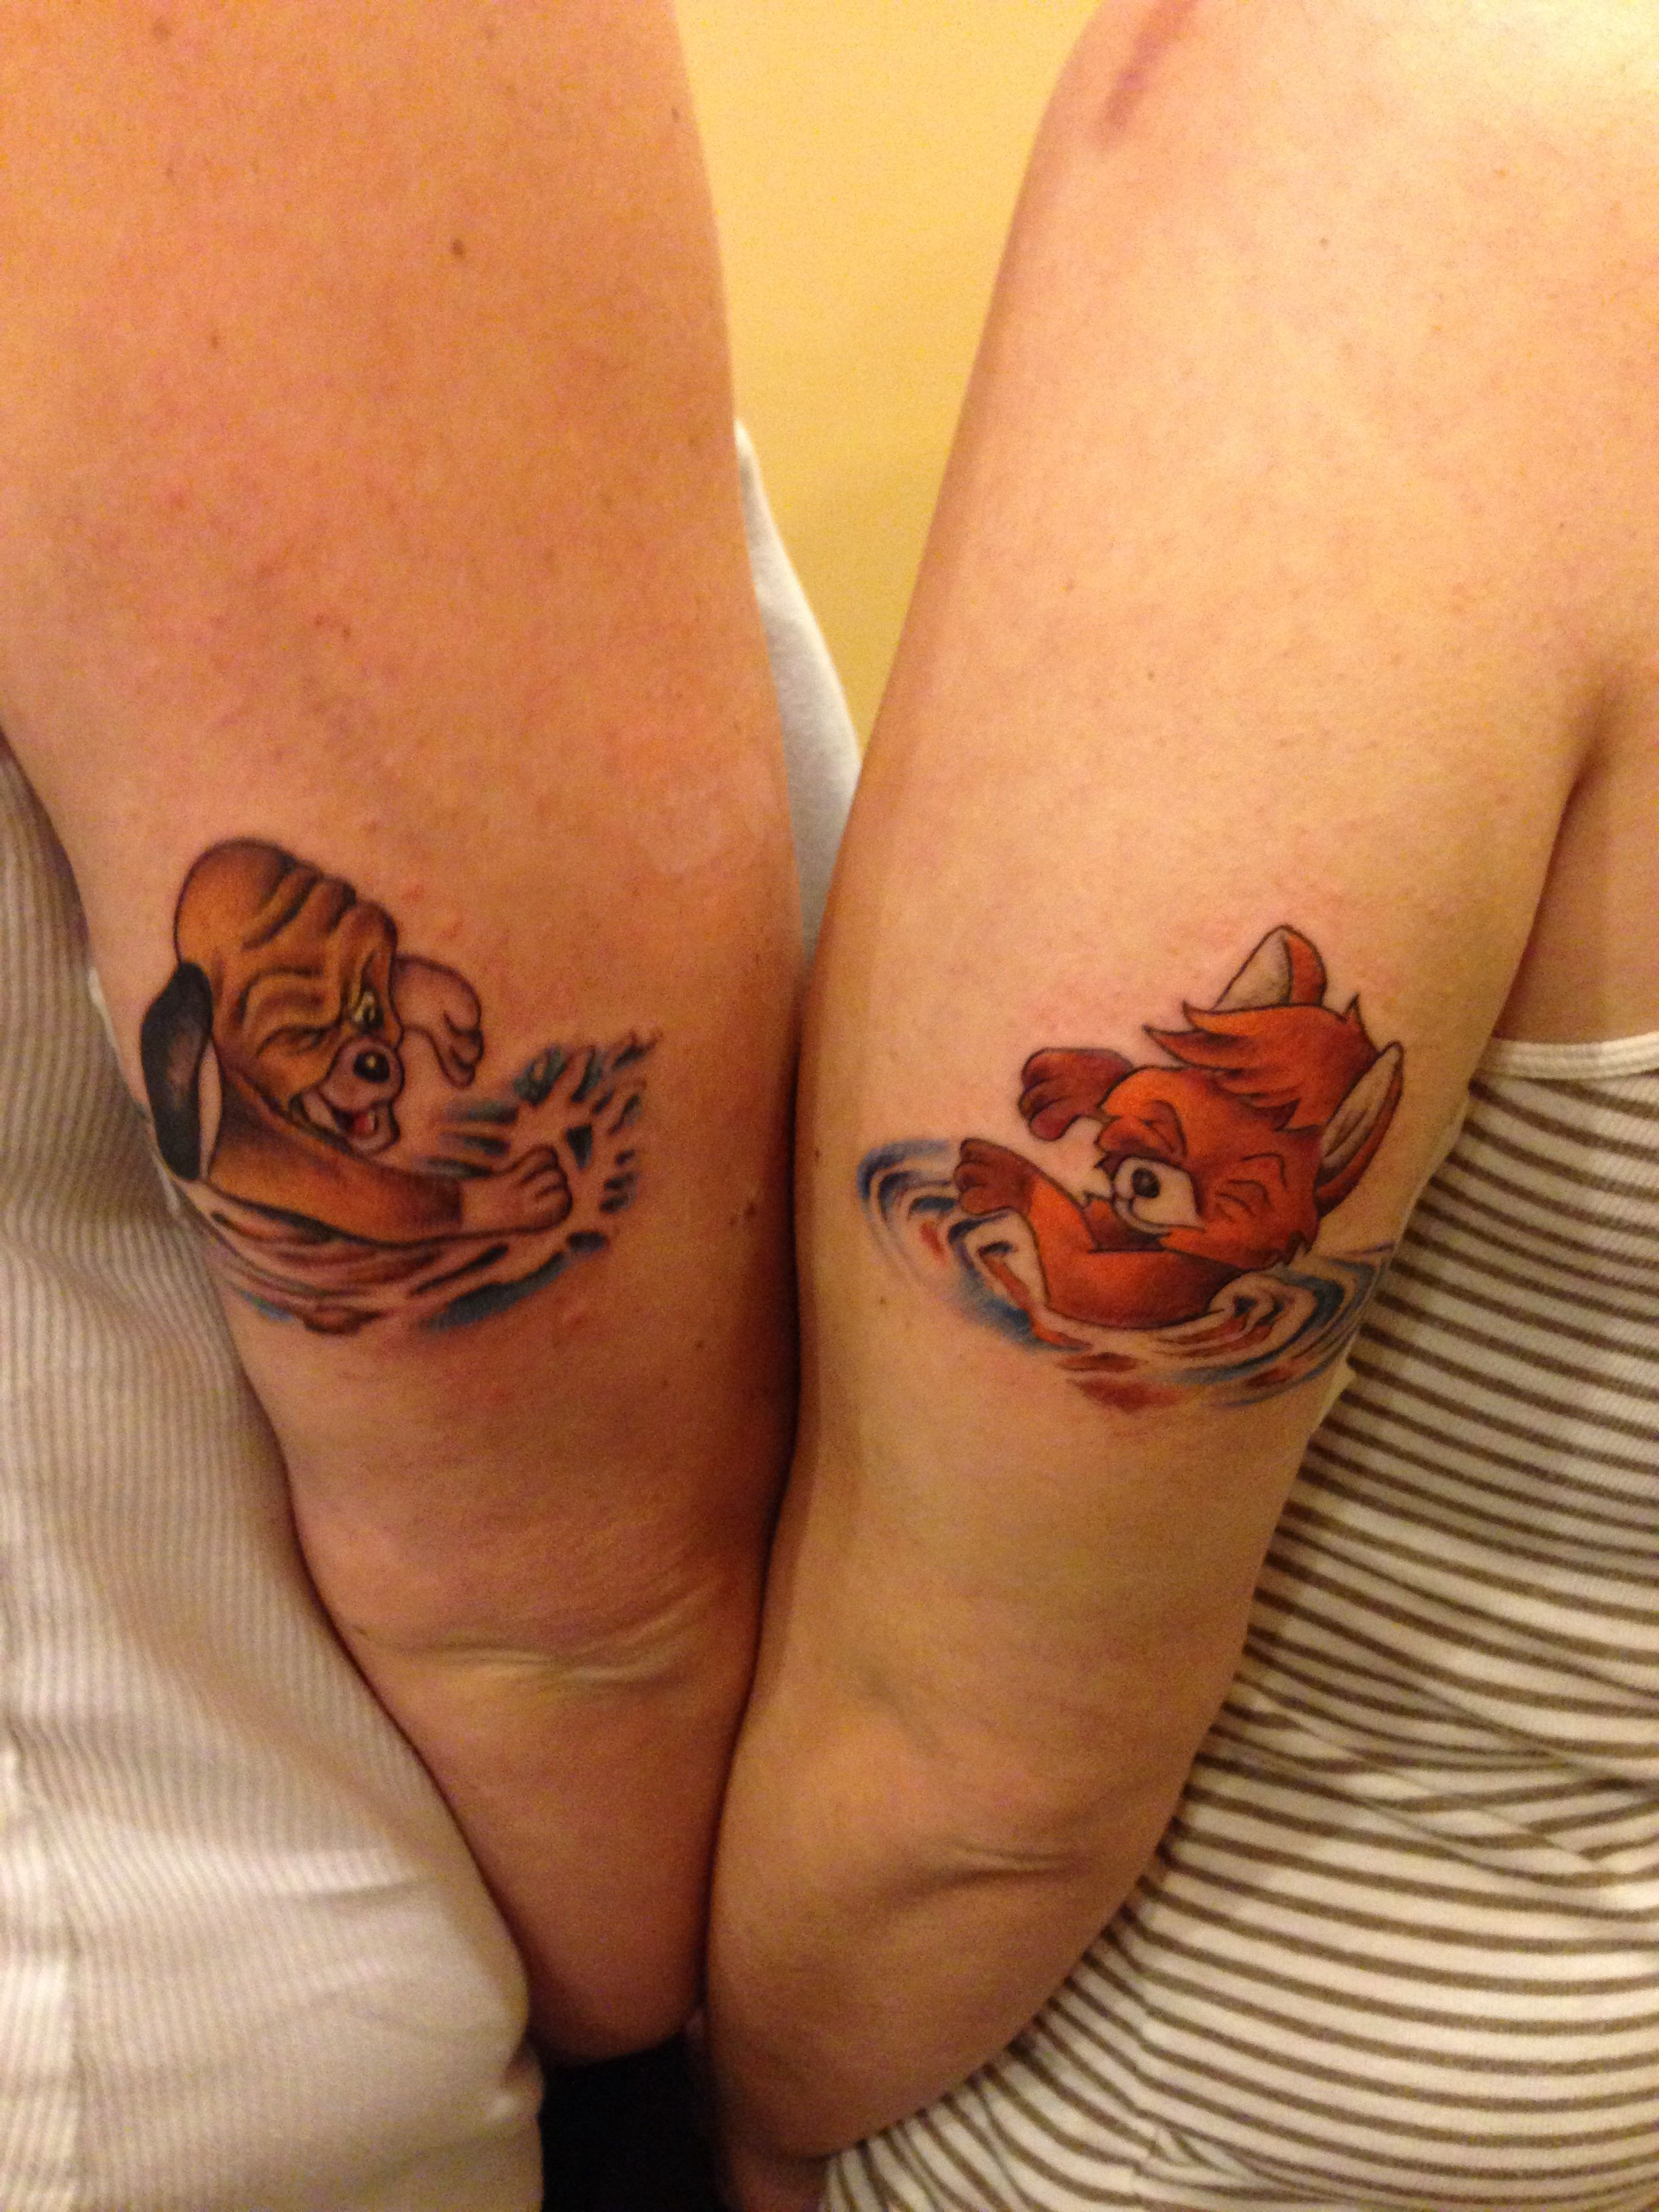 Best Friend Tattoos - The Fox And The Hound Copper And -5841